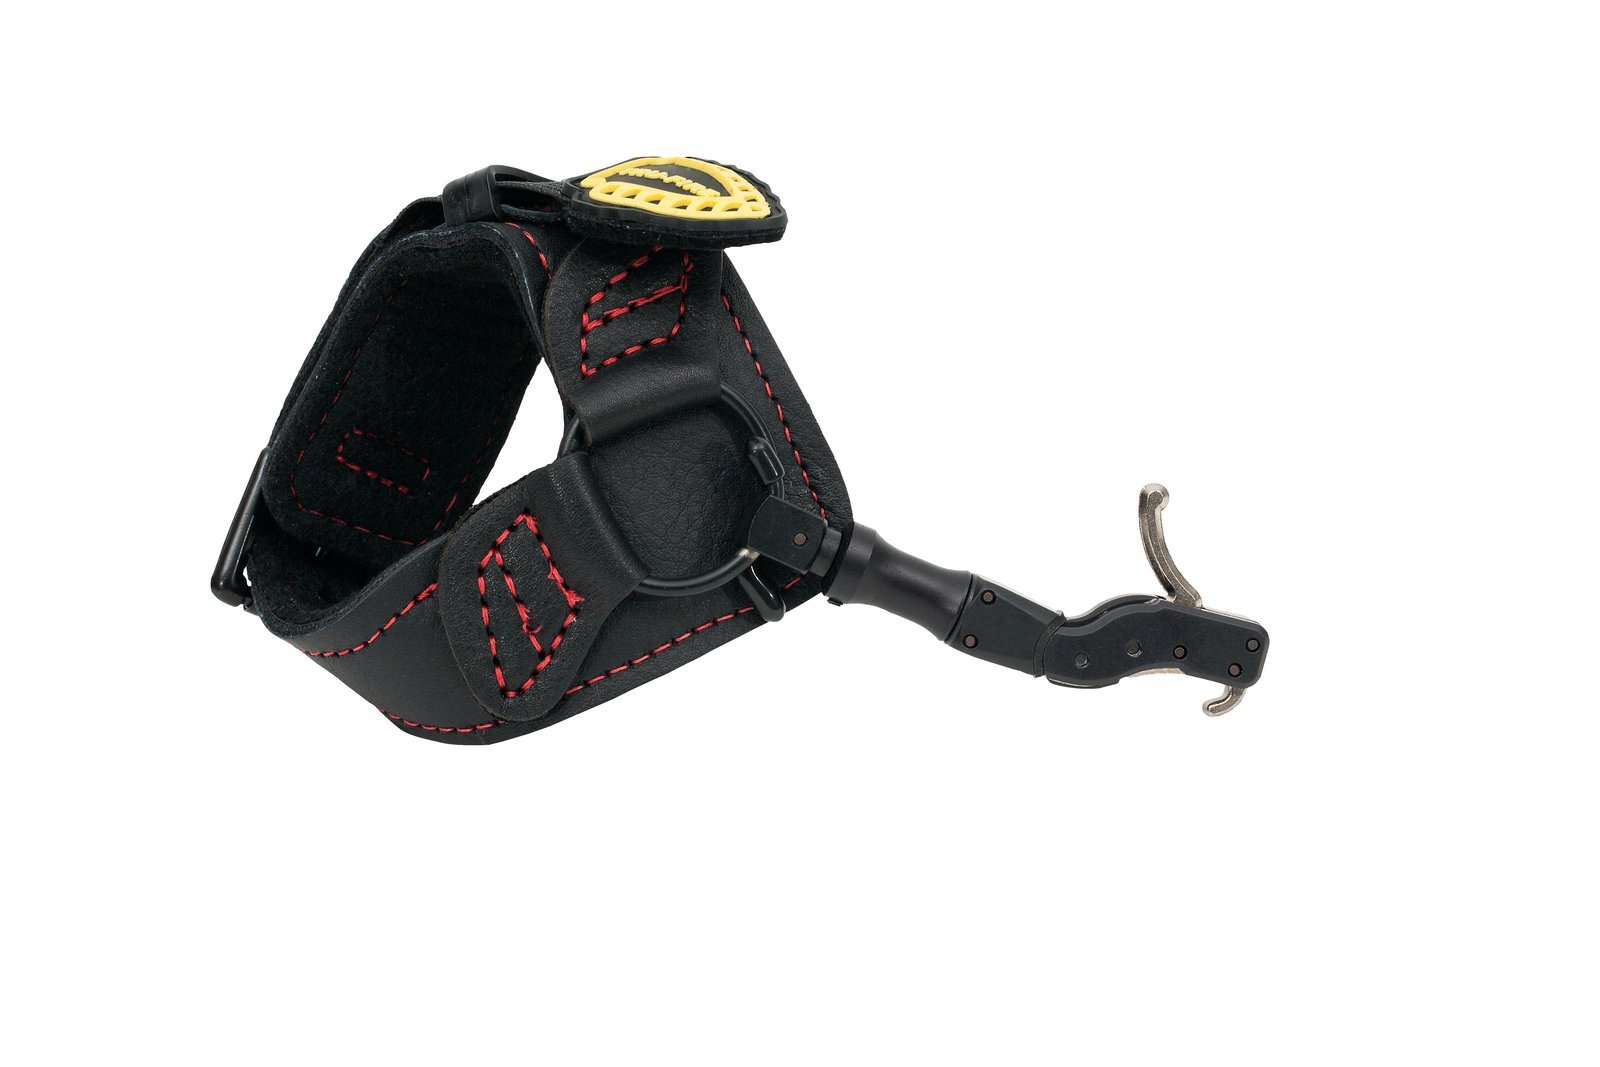 TruFire Hardcore Buckle Foldback Adjustable Archery Compound Bow Release - Black Wrist Strap with Foldback Design by Carbon Express (Image #1)